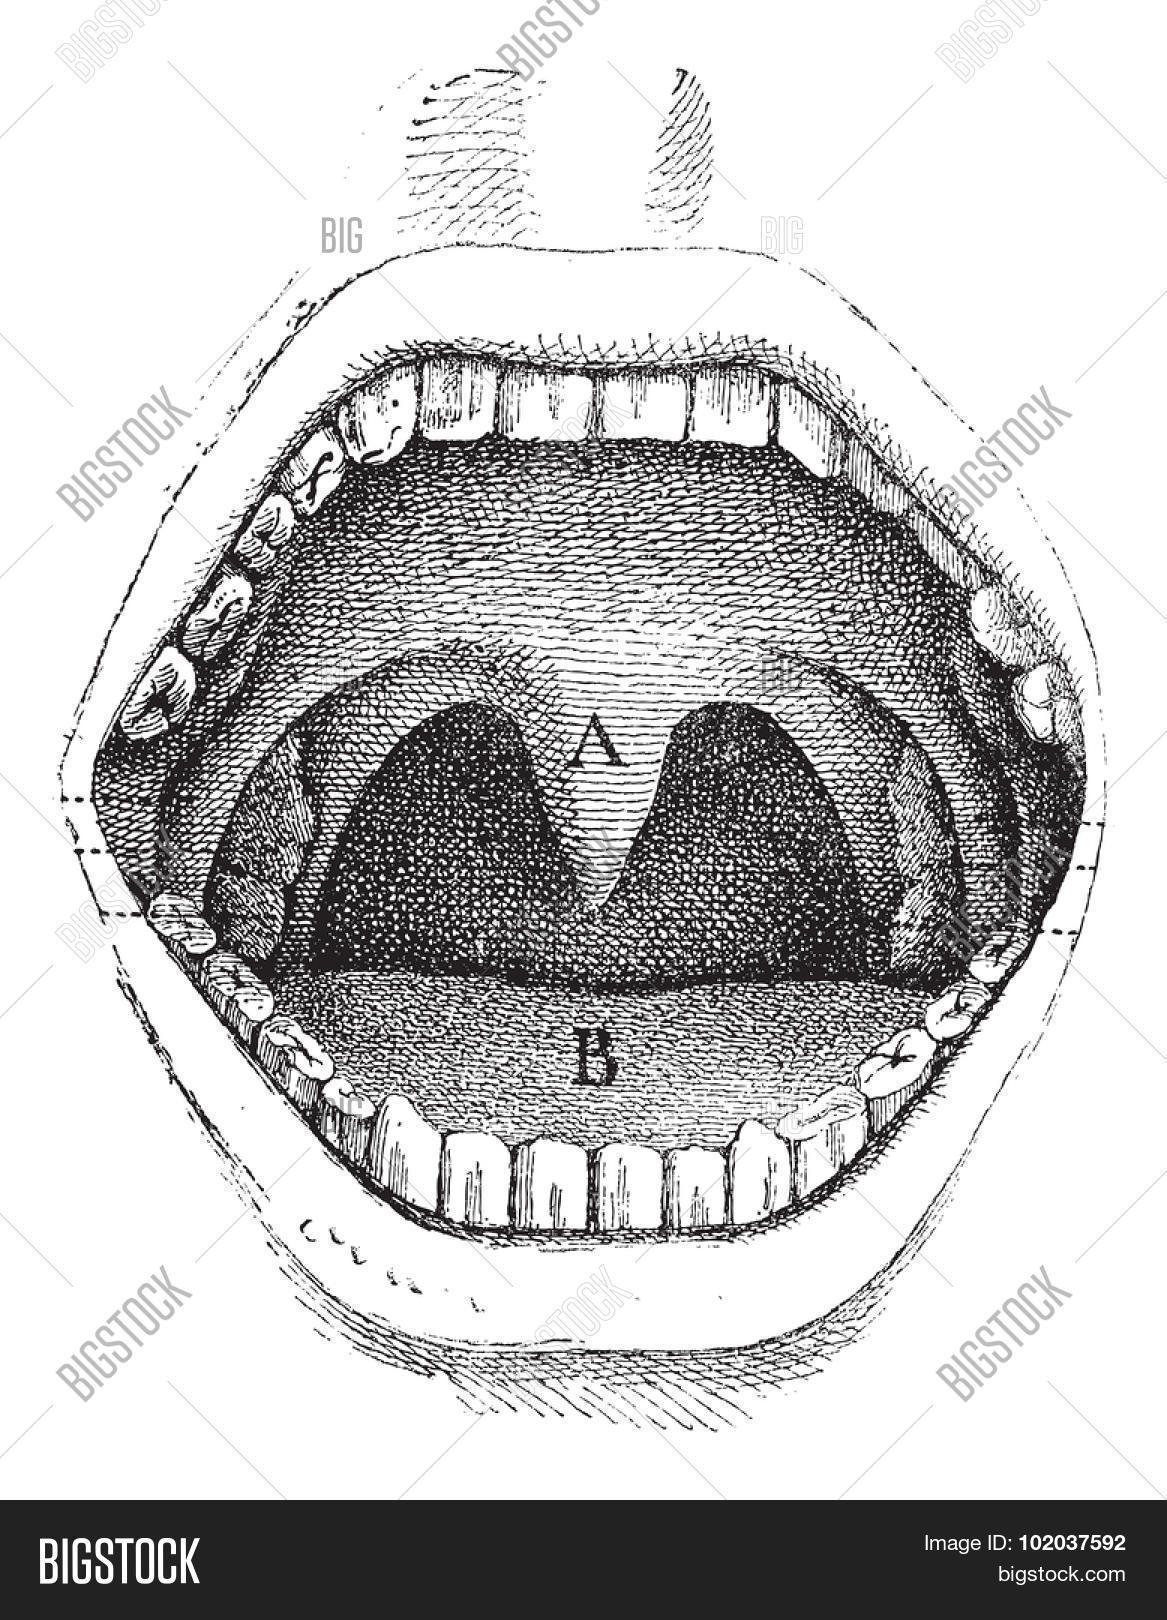 hight resolution of illustration of the inside of a human mouth vintage engraved illustration usual medicine dictionary